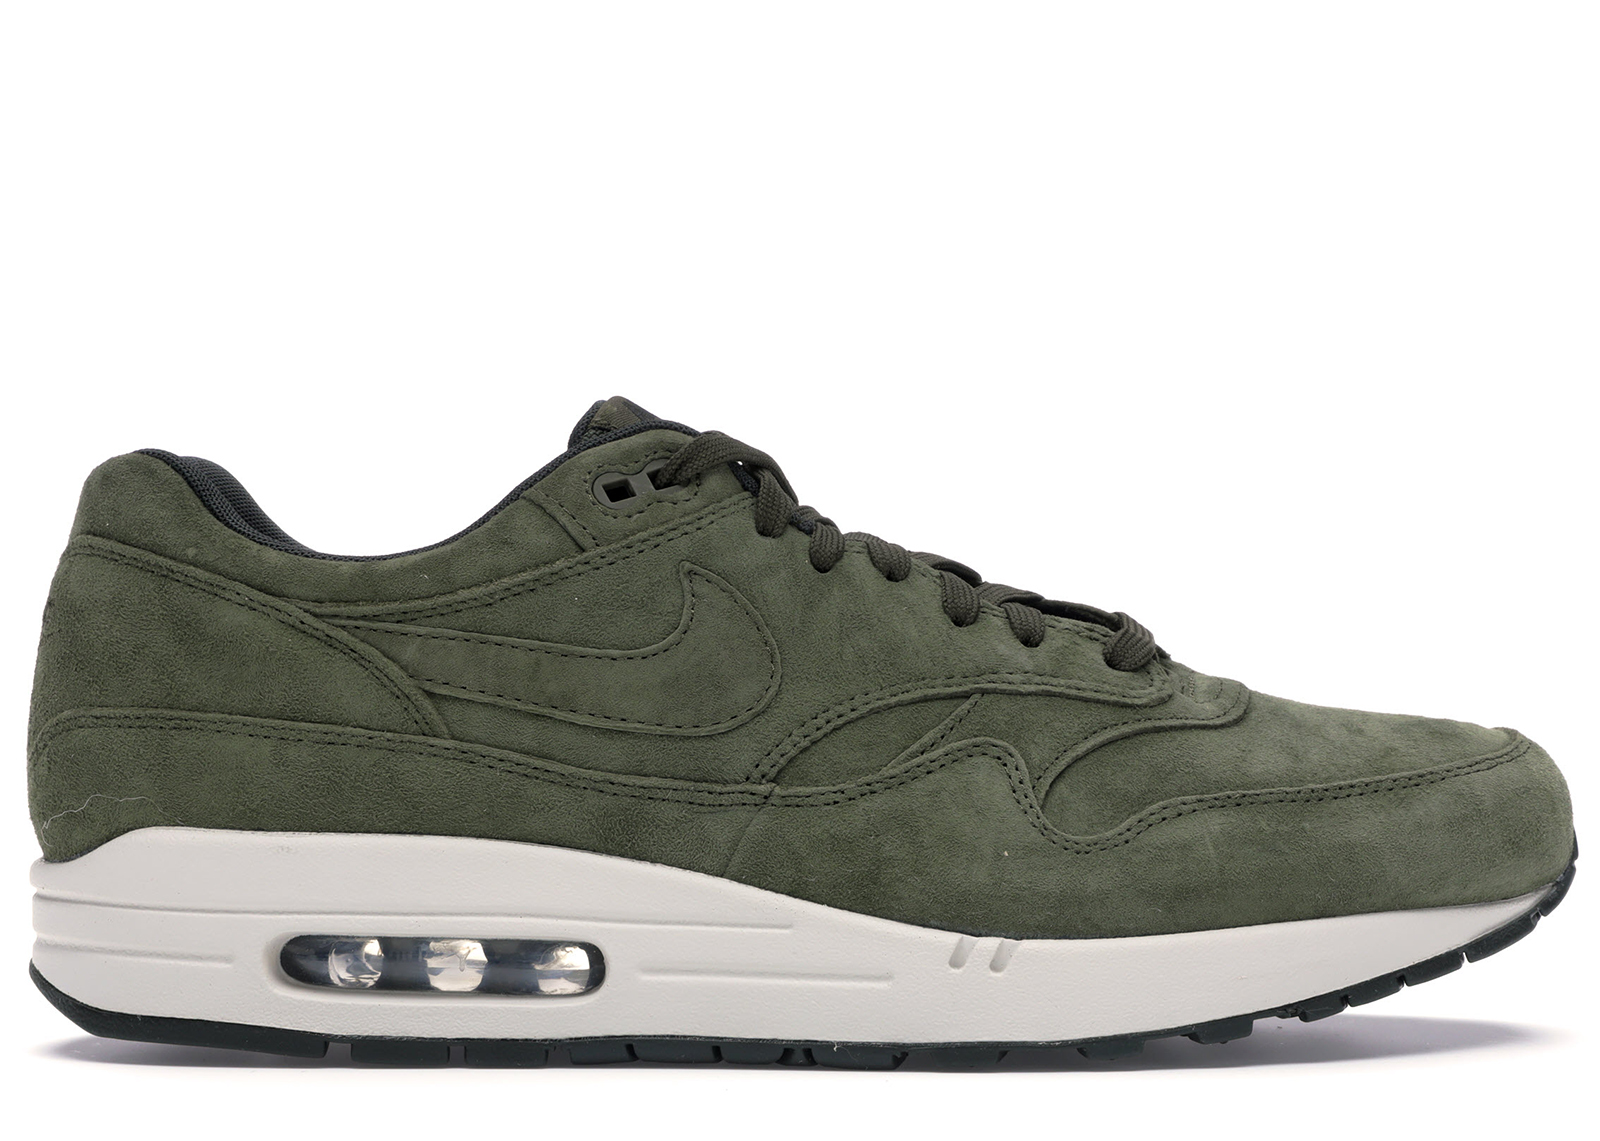 Nike Air Max 1 Olive Canvas Suede